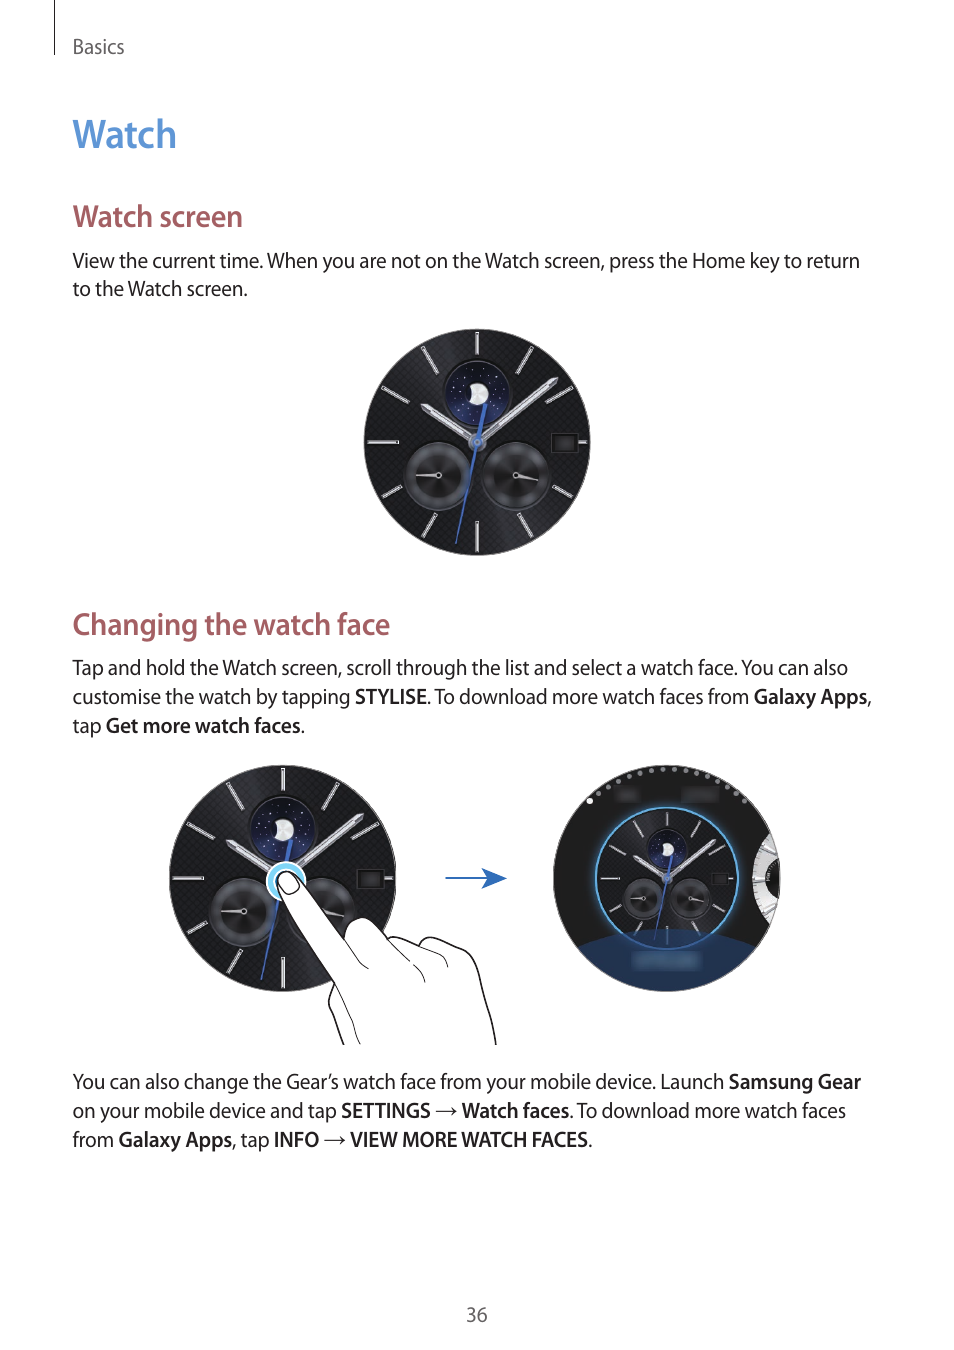 Watch, Watch screen, Changing the watch face | Samsung Gear S3 SM